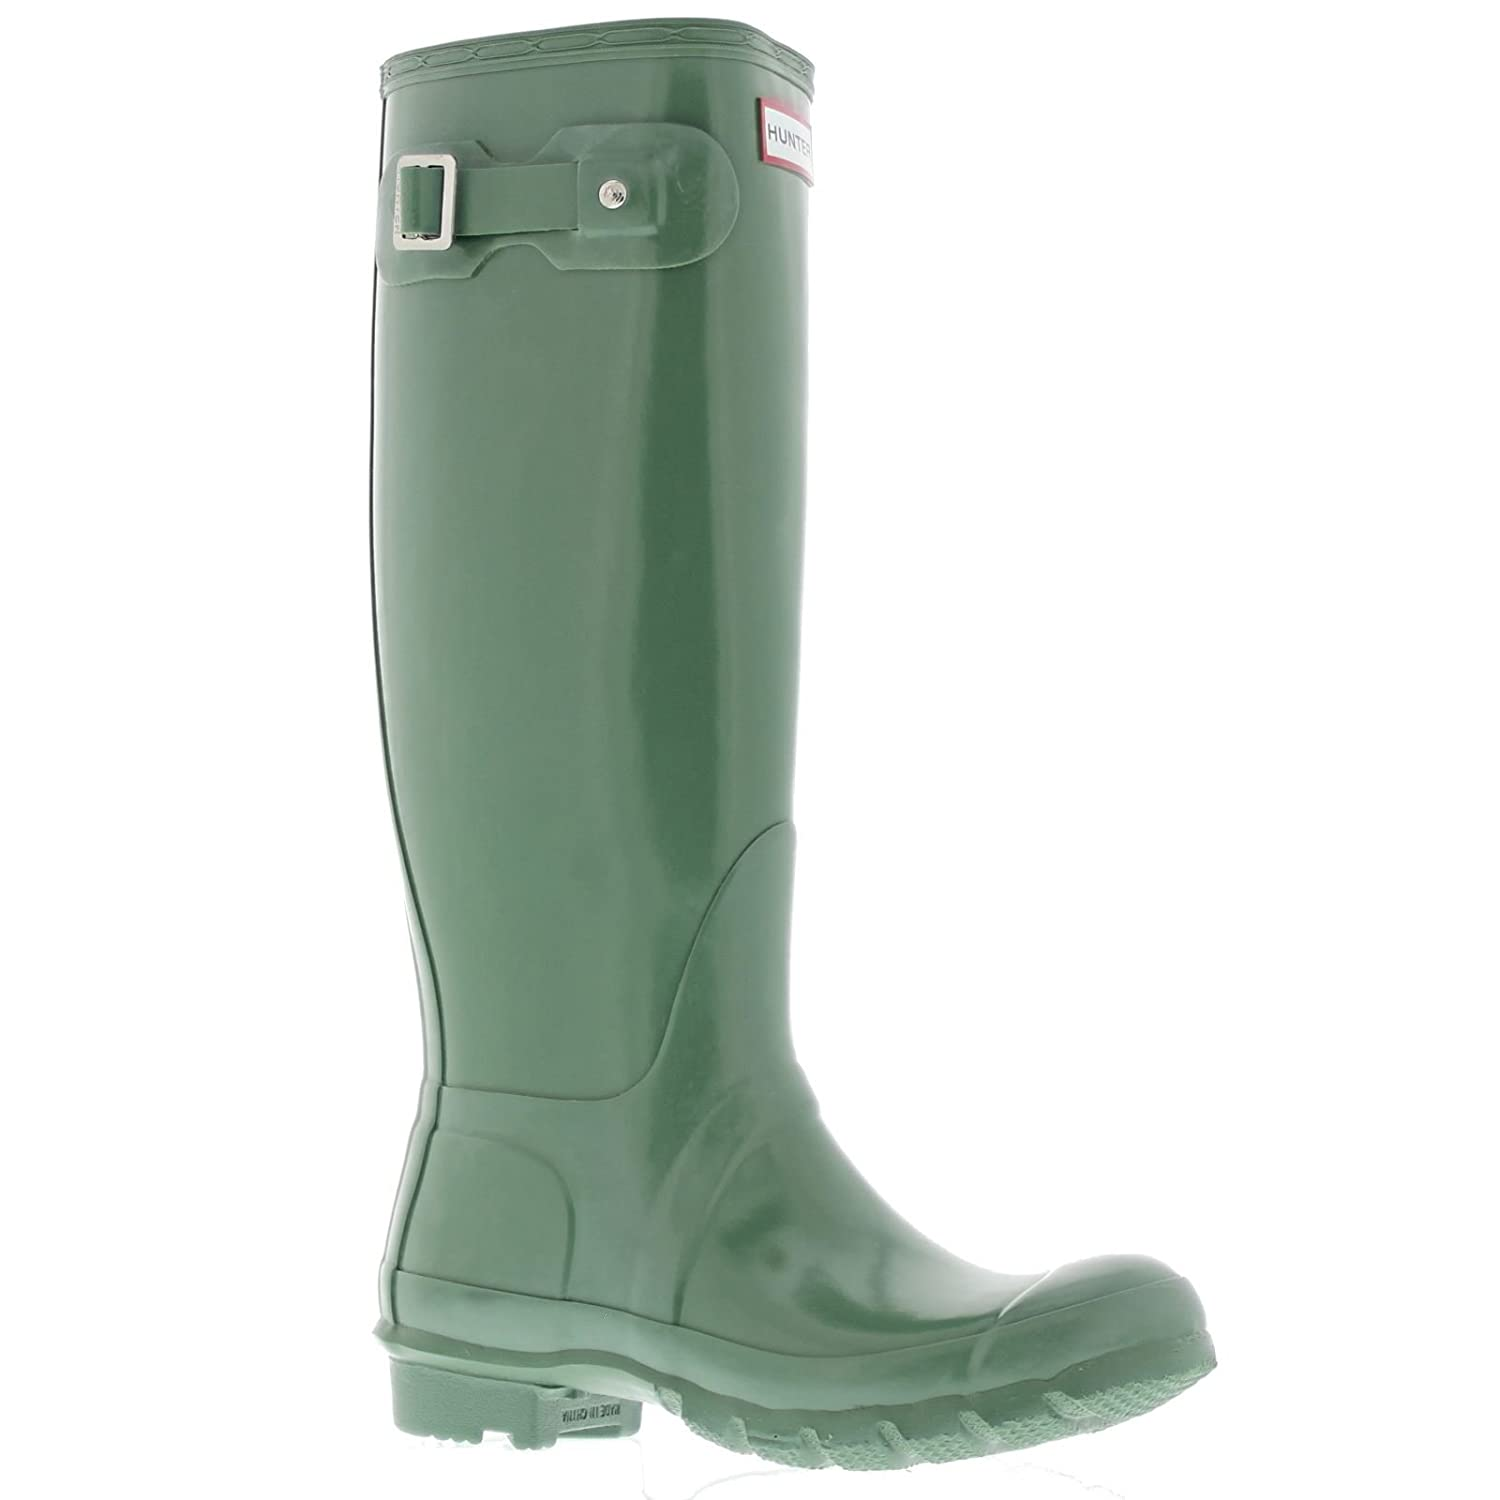 Hunter Original Original Tall, Bottes Bottes Femme 19929 Moss Green 4ee0237 - epictionpvp.space